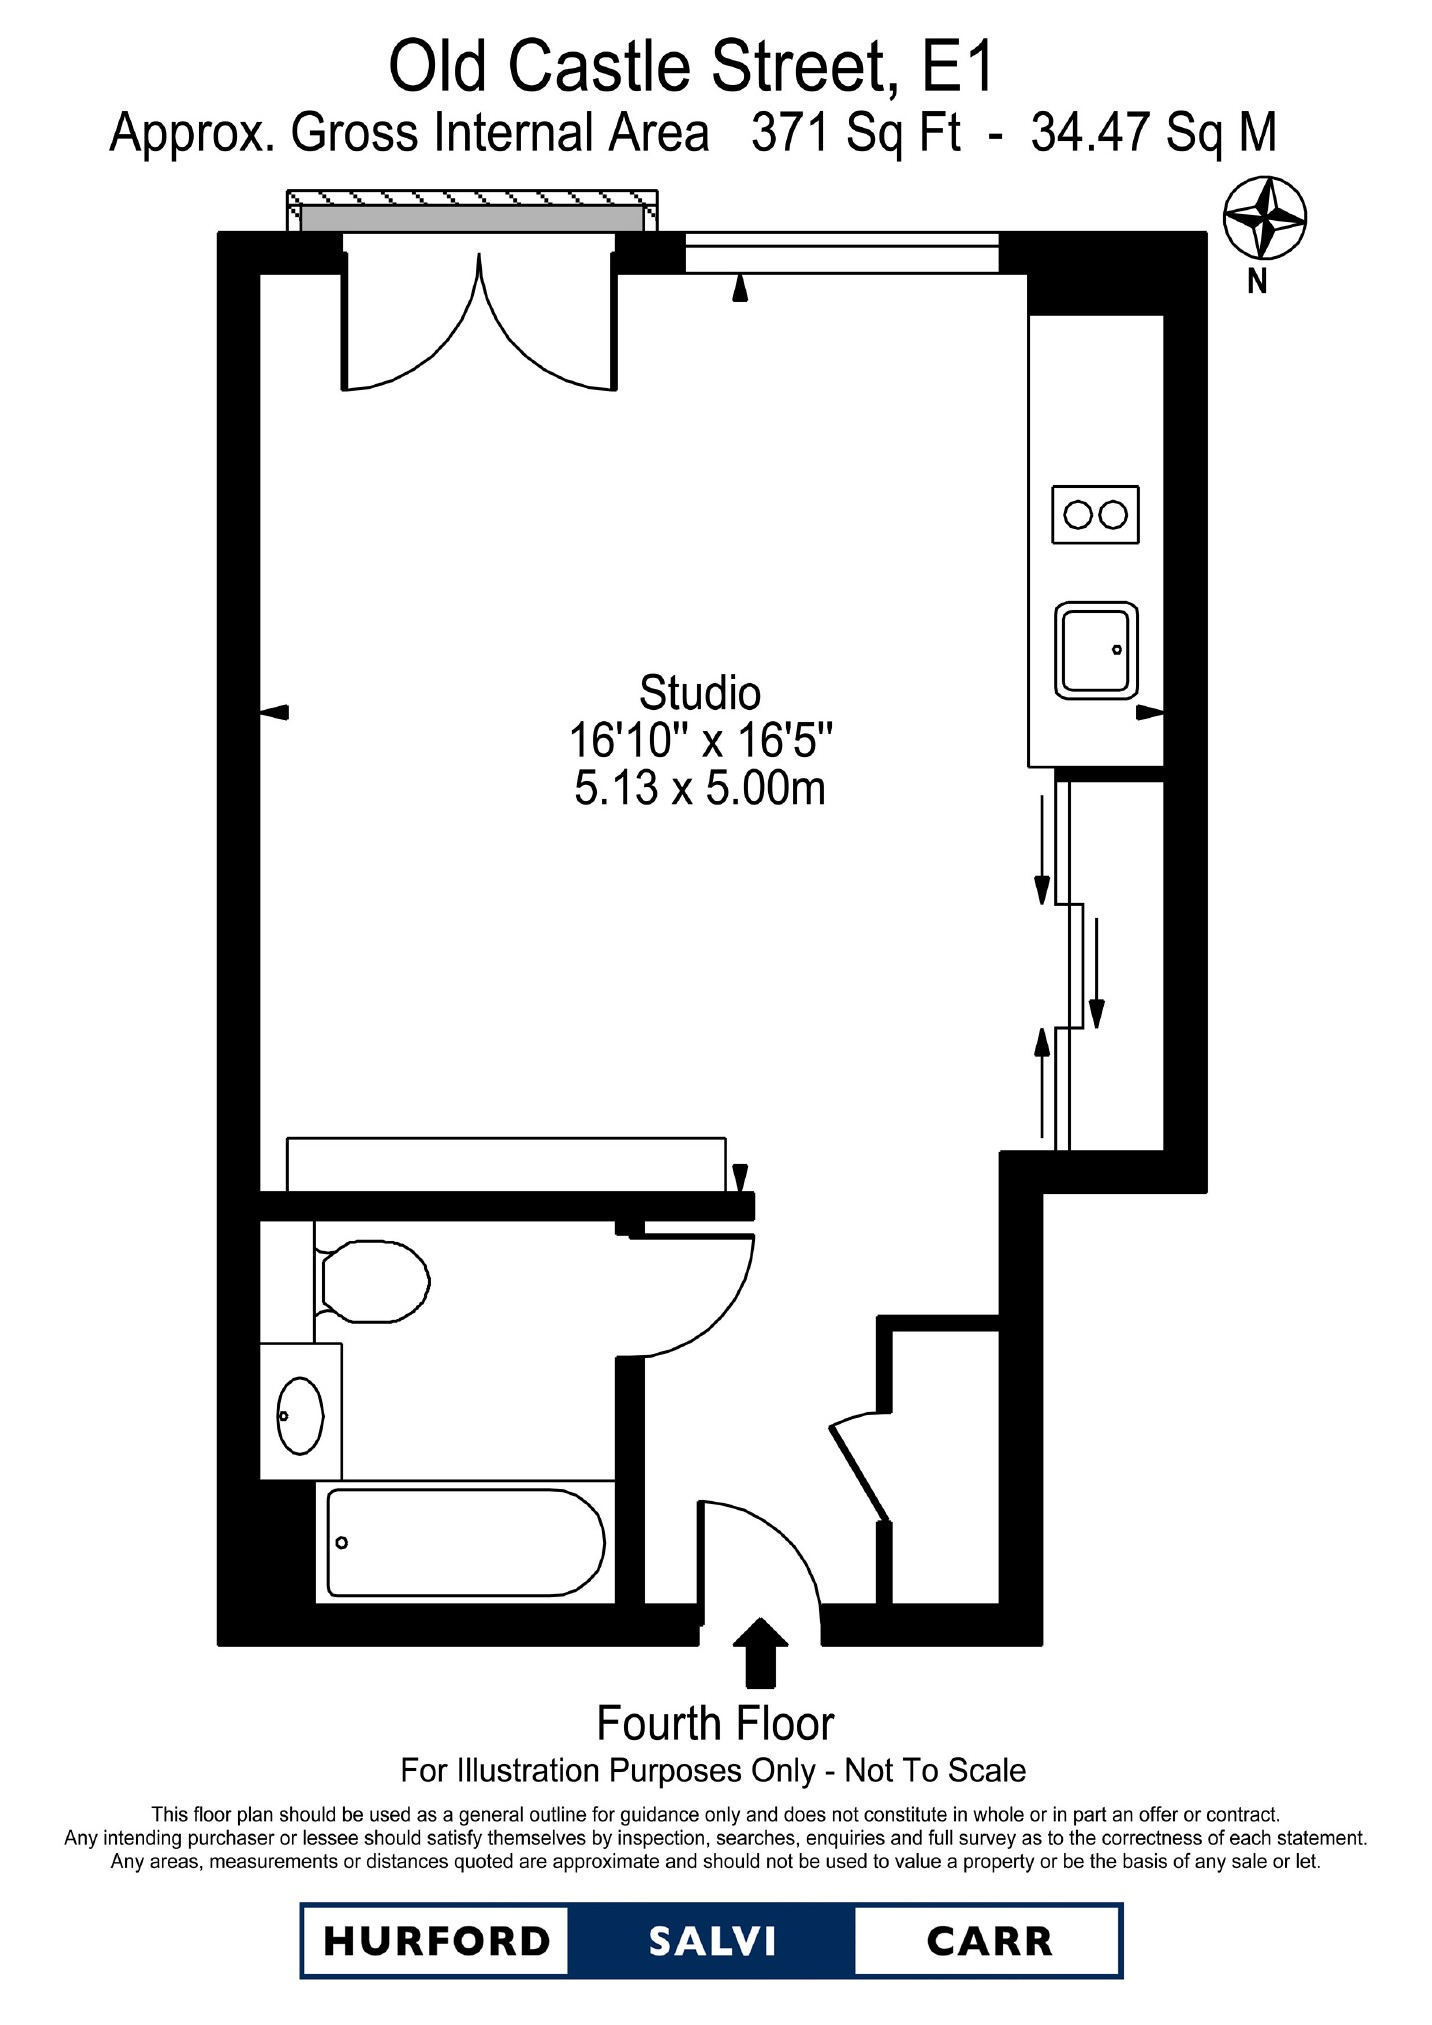 Old Castle Street, London, E1 floorplan